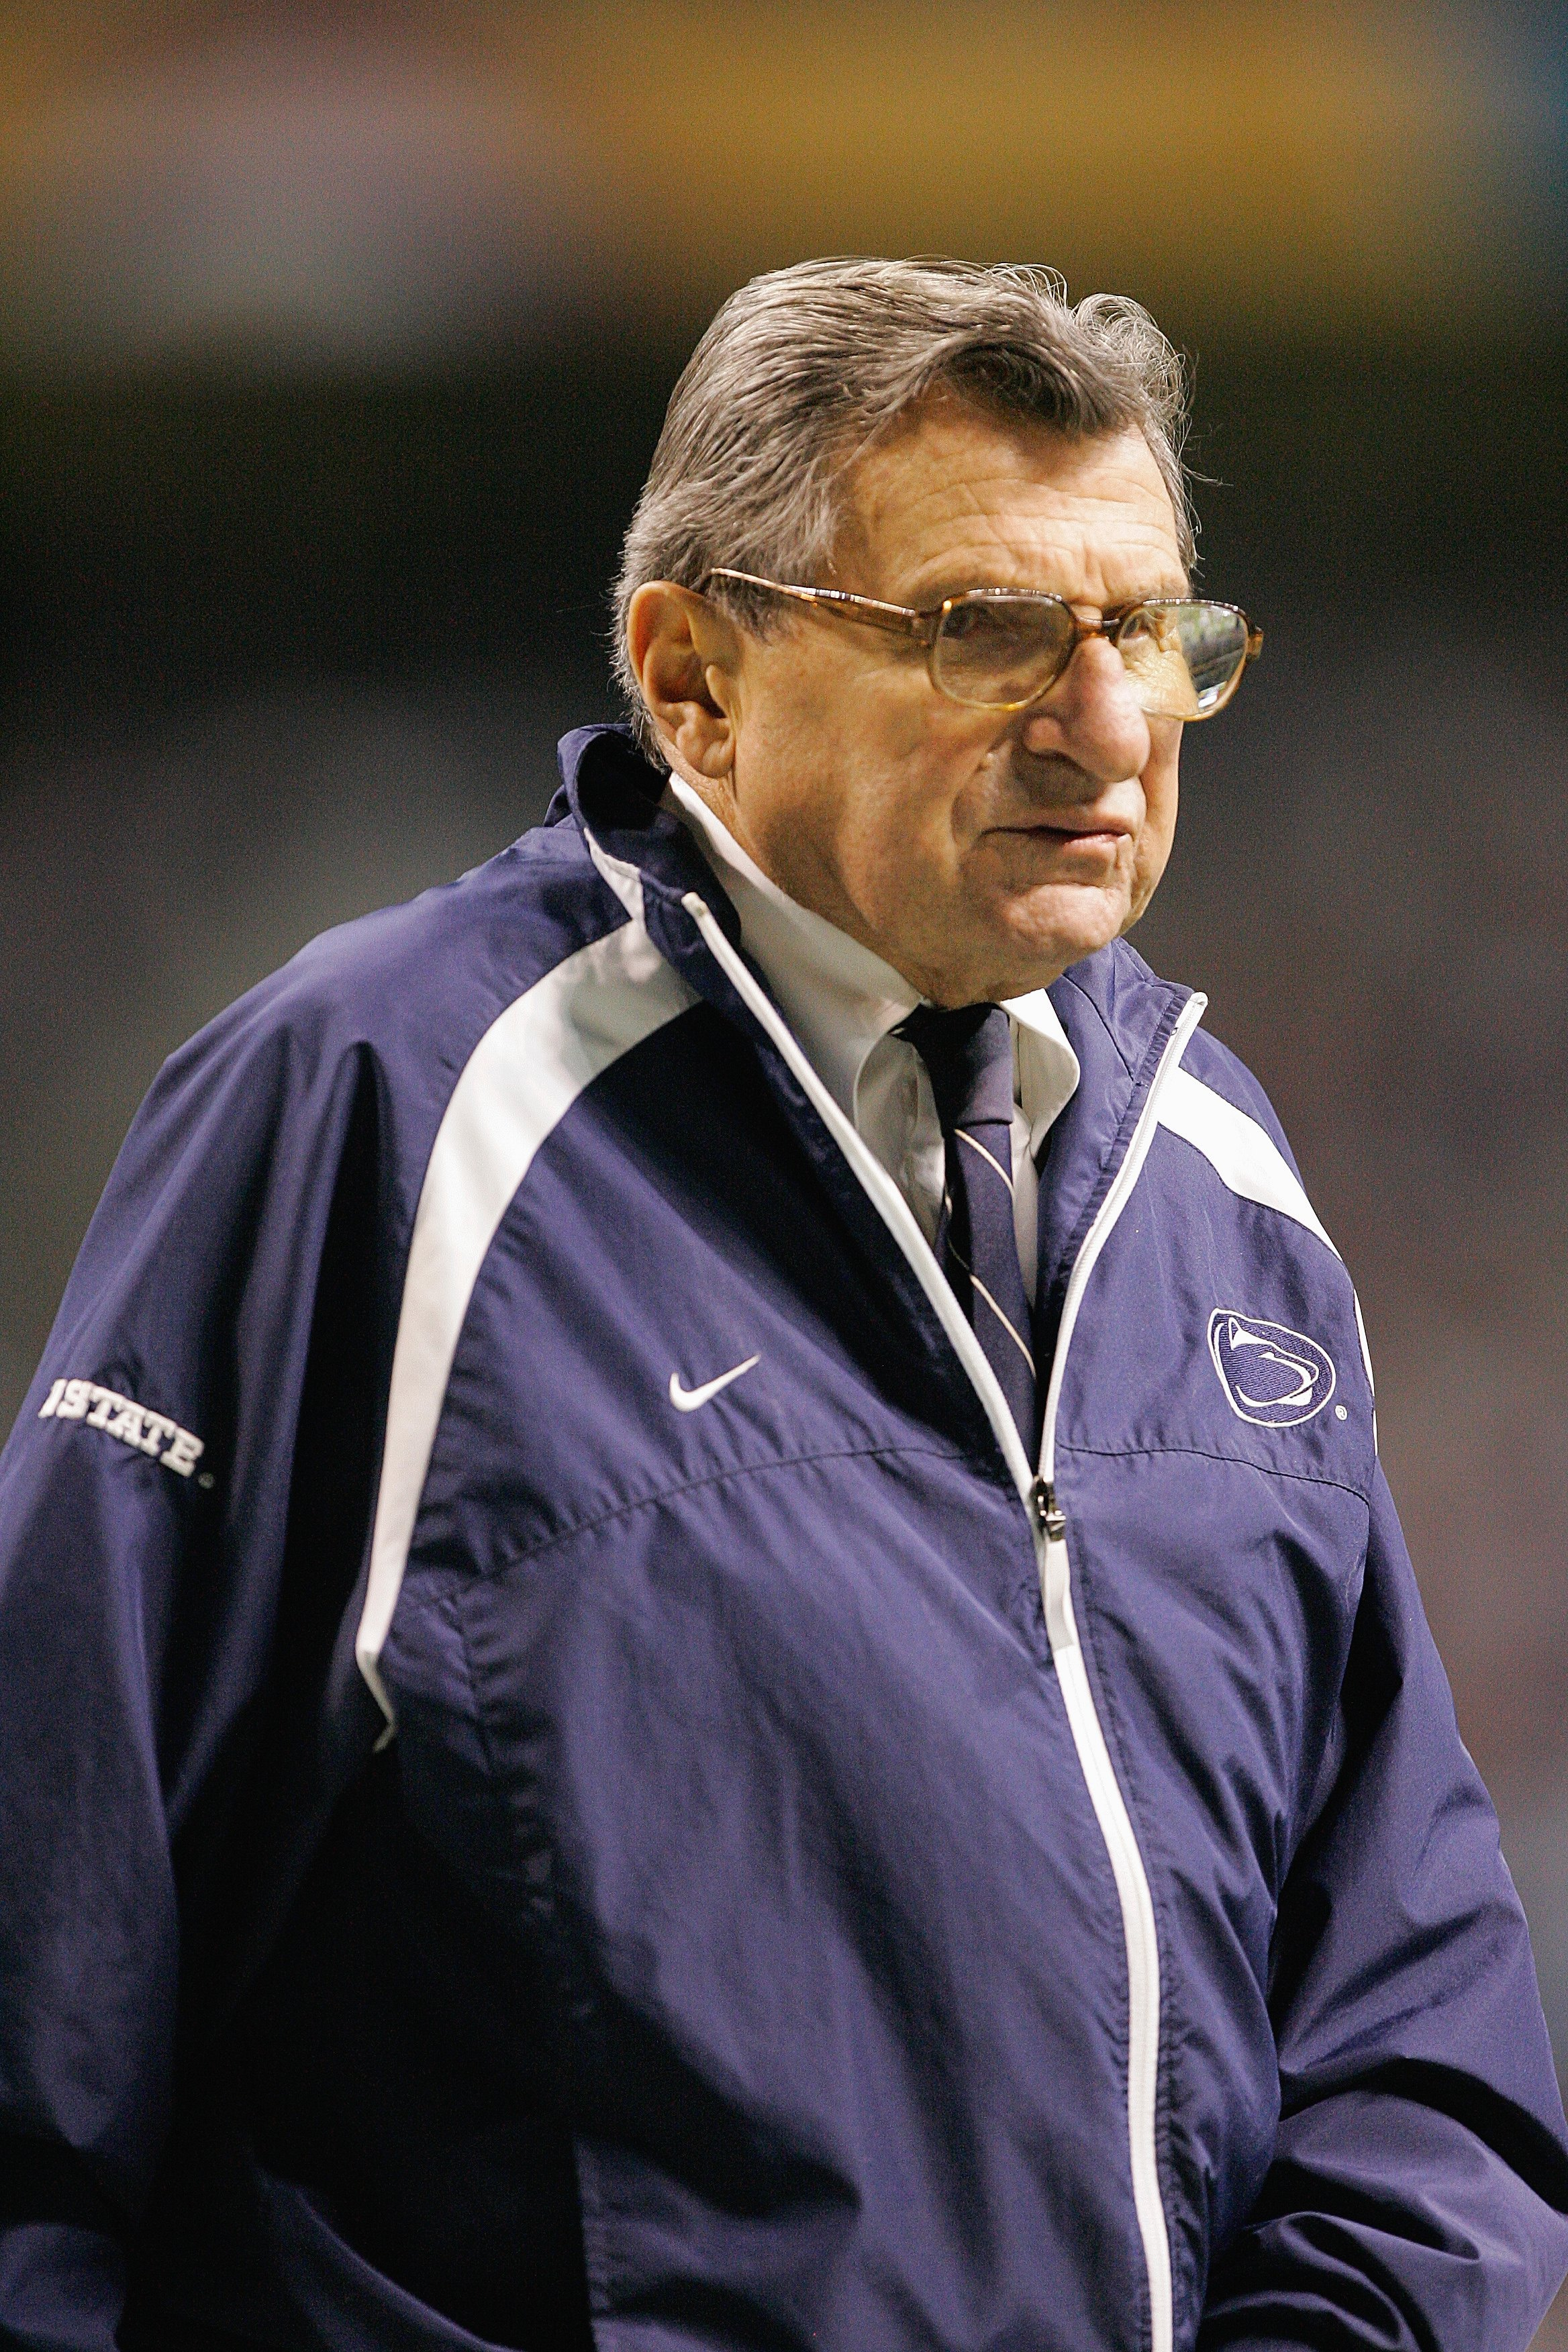 SAN ANTONIO - DECEMBER 29:  Head Coach Joe Paterno of the Penn State Nittany Lions looks on during the game against the Texas A&M Aggies during the Valero Alamo Bowl on December 29, 2007 at the Alamodome in San Antonio, Texas.  Penn State won 24-17.  (Pho